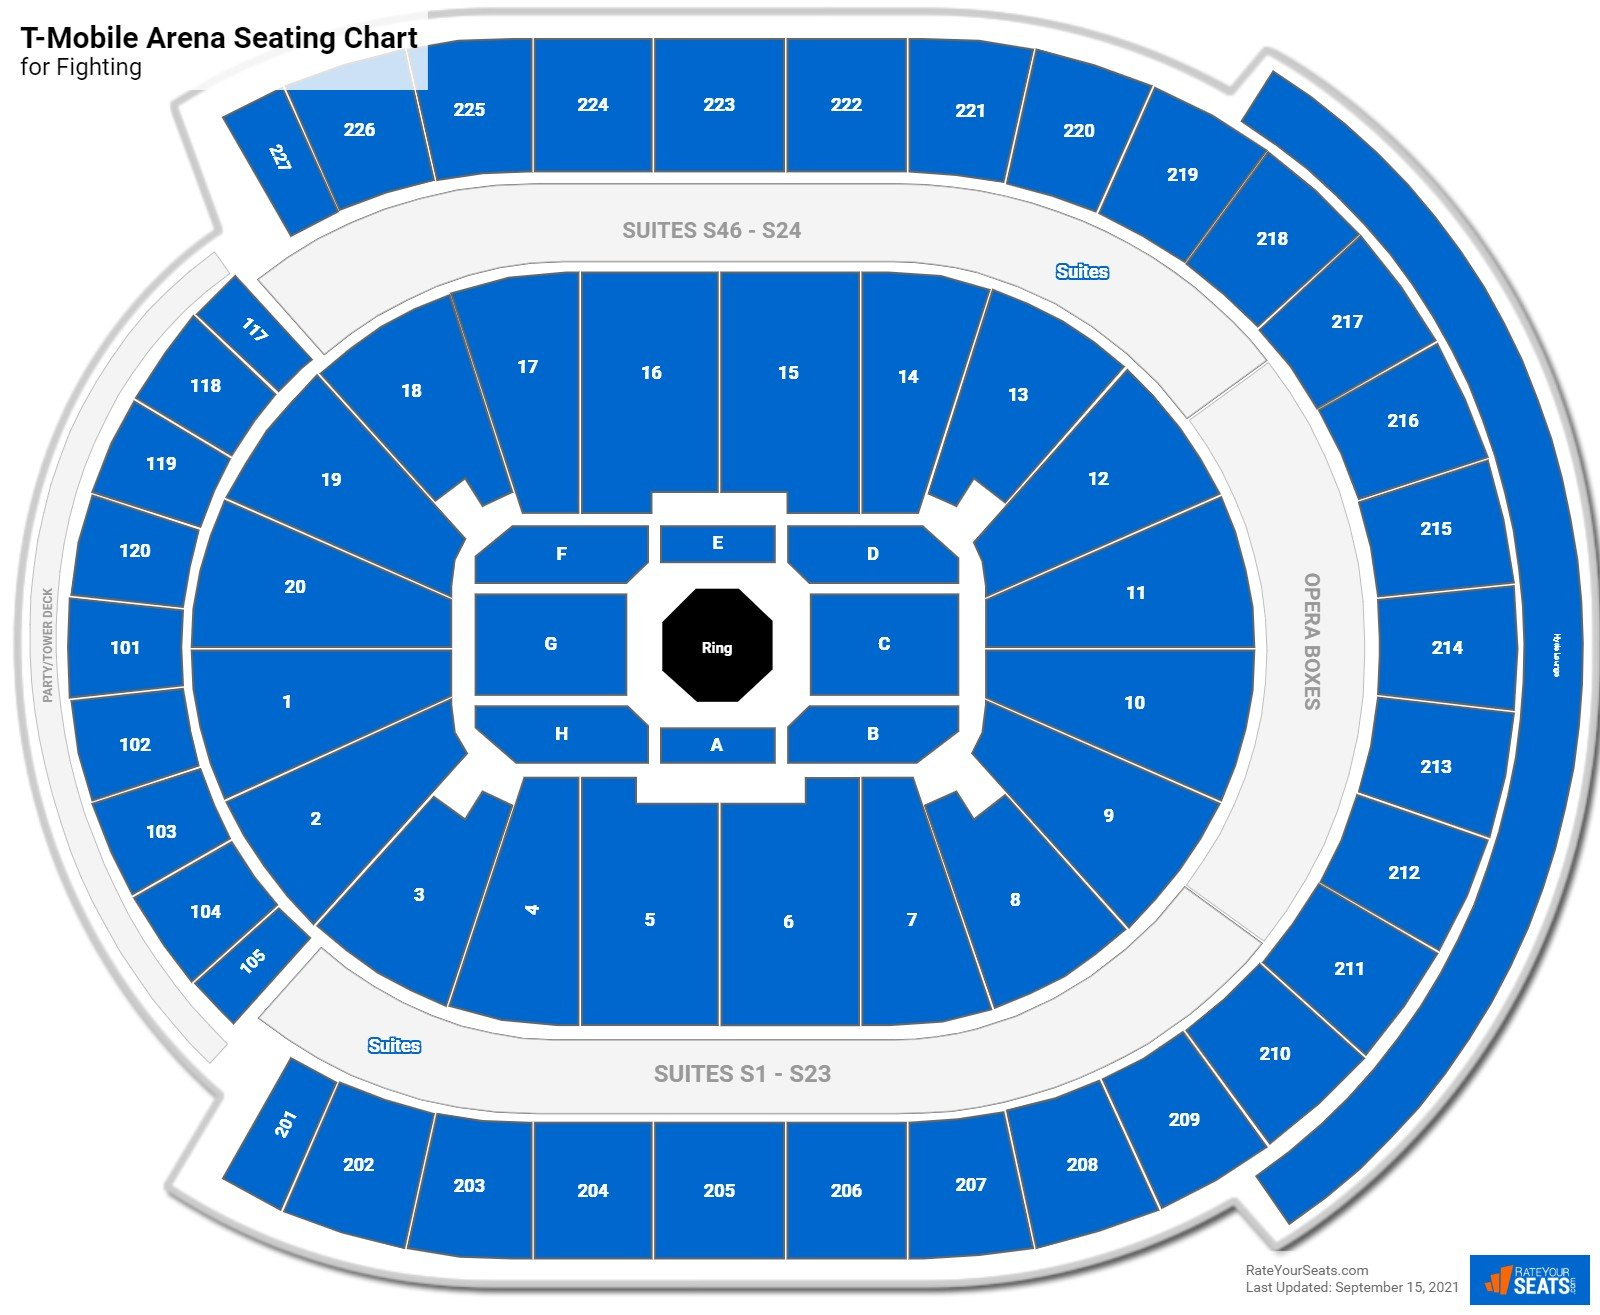 T-Mobile Arena Seating Chart for Fighting